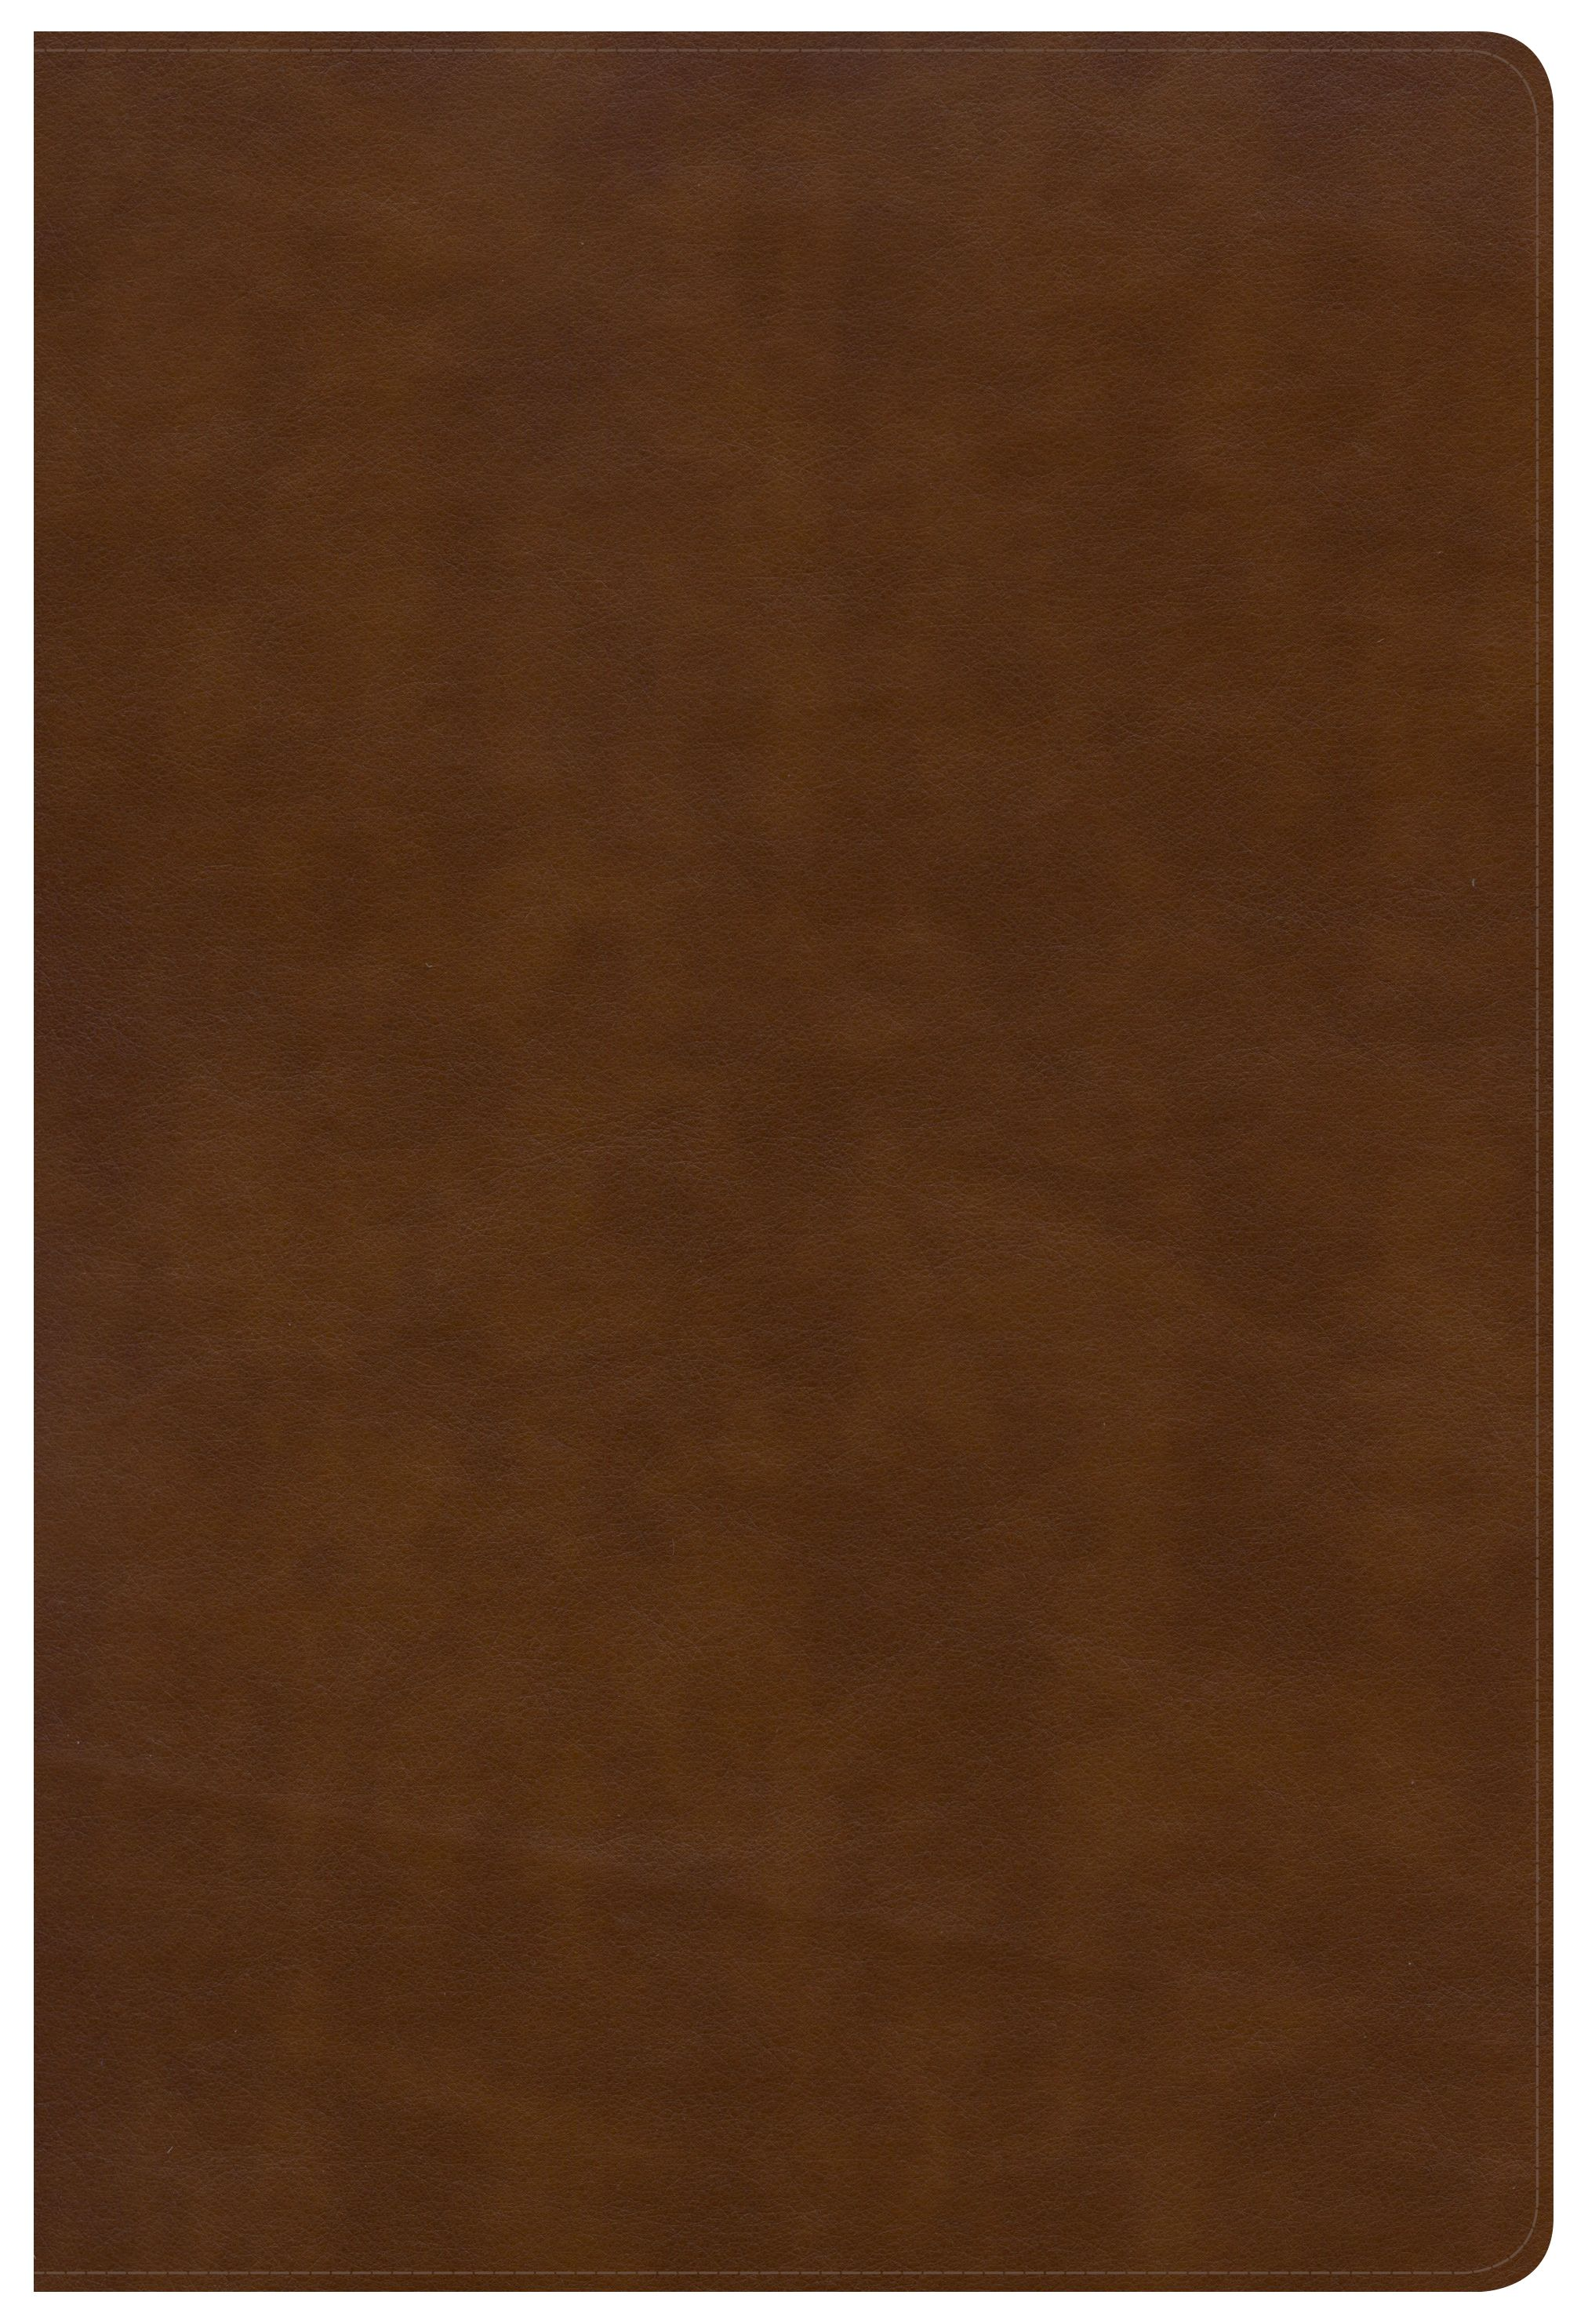 NKJV Large Print Ultrathin Reference Bible Black Letter Edition, British Tan LeatherTouch, Indexed